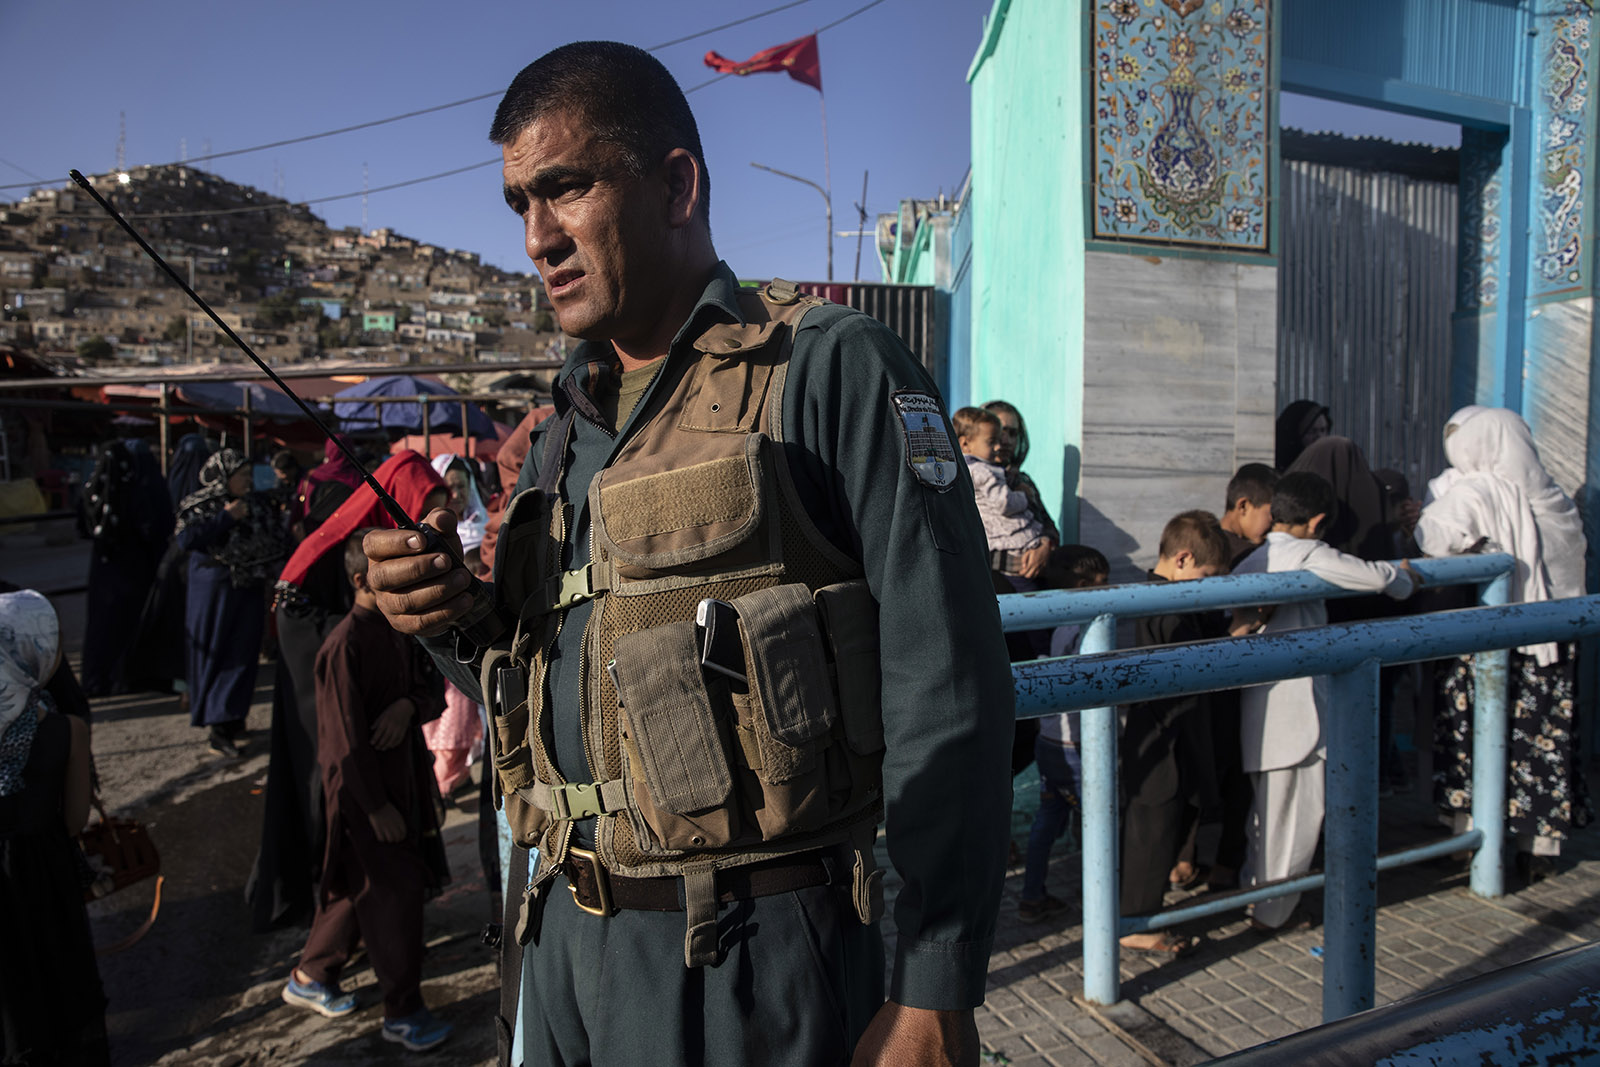 Beyond Afghanistan's 'Graveyard for the Living'